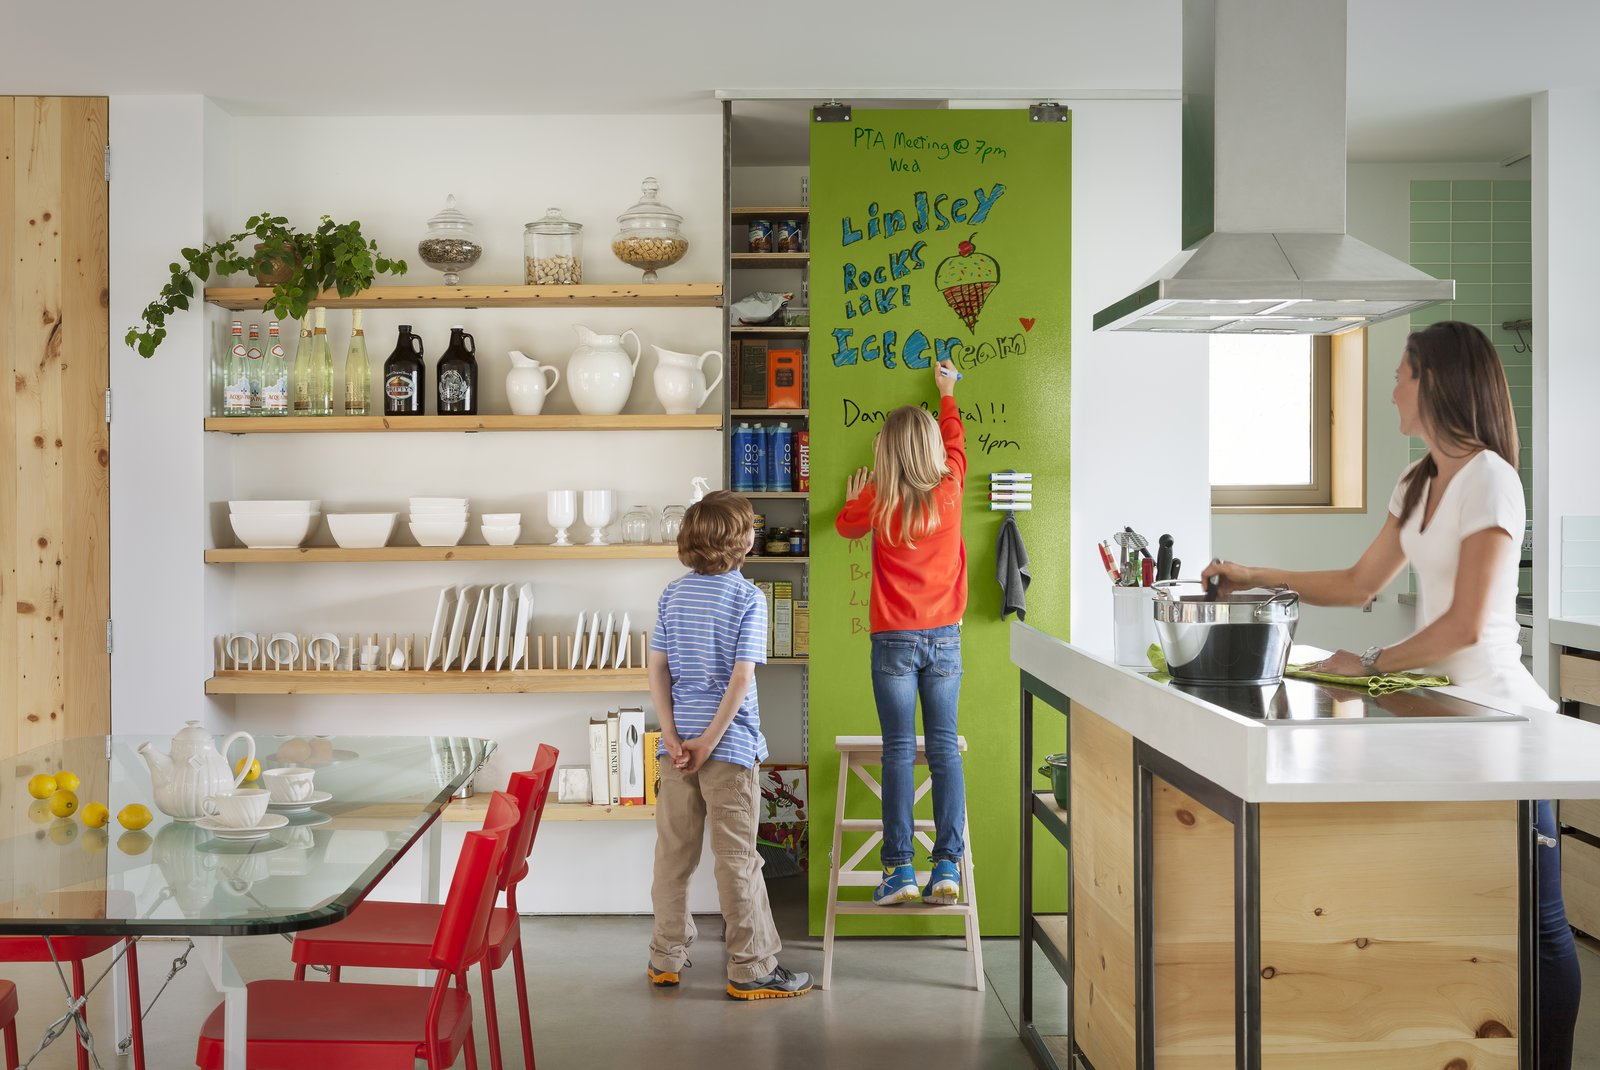 Kitchen, Open Cabinet, Range Hood, Cooktops, Wood Cabinet, and Concrete Floor An IdeaPaint wall in full effect in a family's kitchen. The company, which is exhibiting at Dwell on Design (booth #1009), is recruiting their onsite artist, Derek Cascio, to create a special wall for kids to color and scribble on in the Modern Family Pavilion (booth #901) Saturday and Sunday, May 30 and 31.  Photo 3 of 8 in 7 Ways to Child-Proof Your Home Without Forgoing Style from Your Guide to Dwell on Design 2015 Is Here